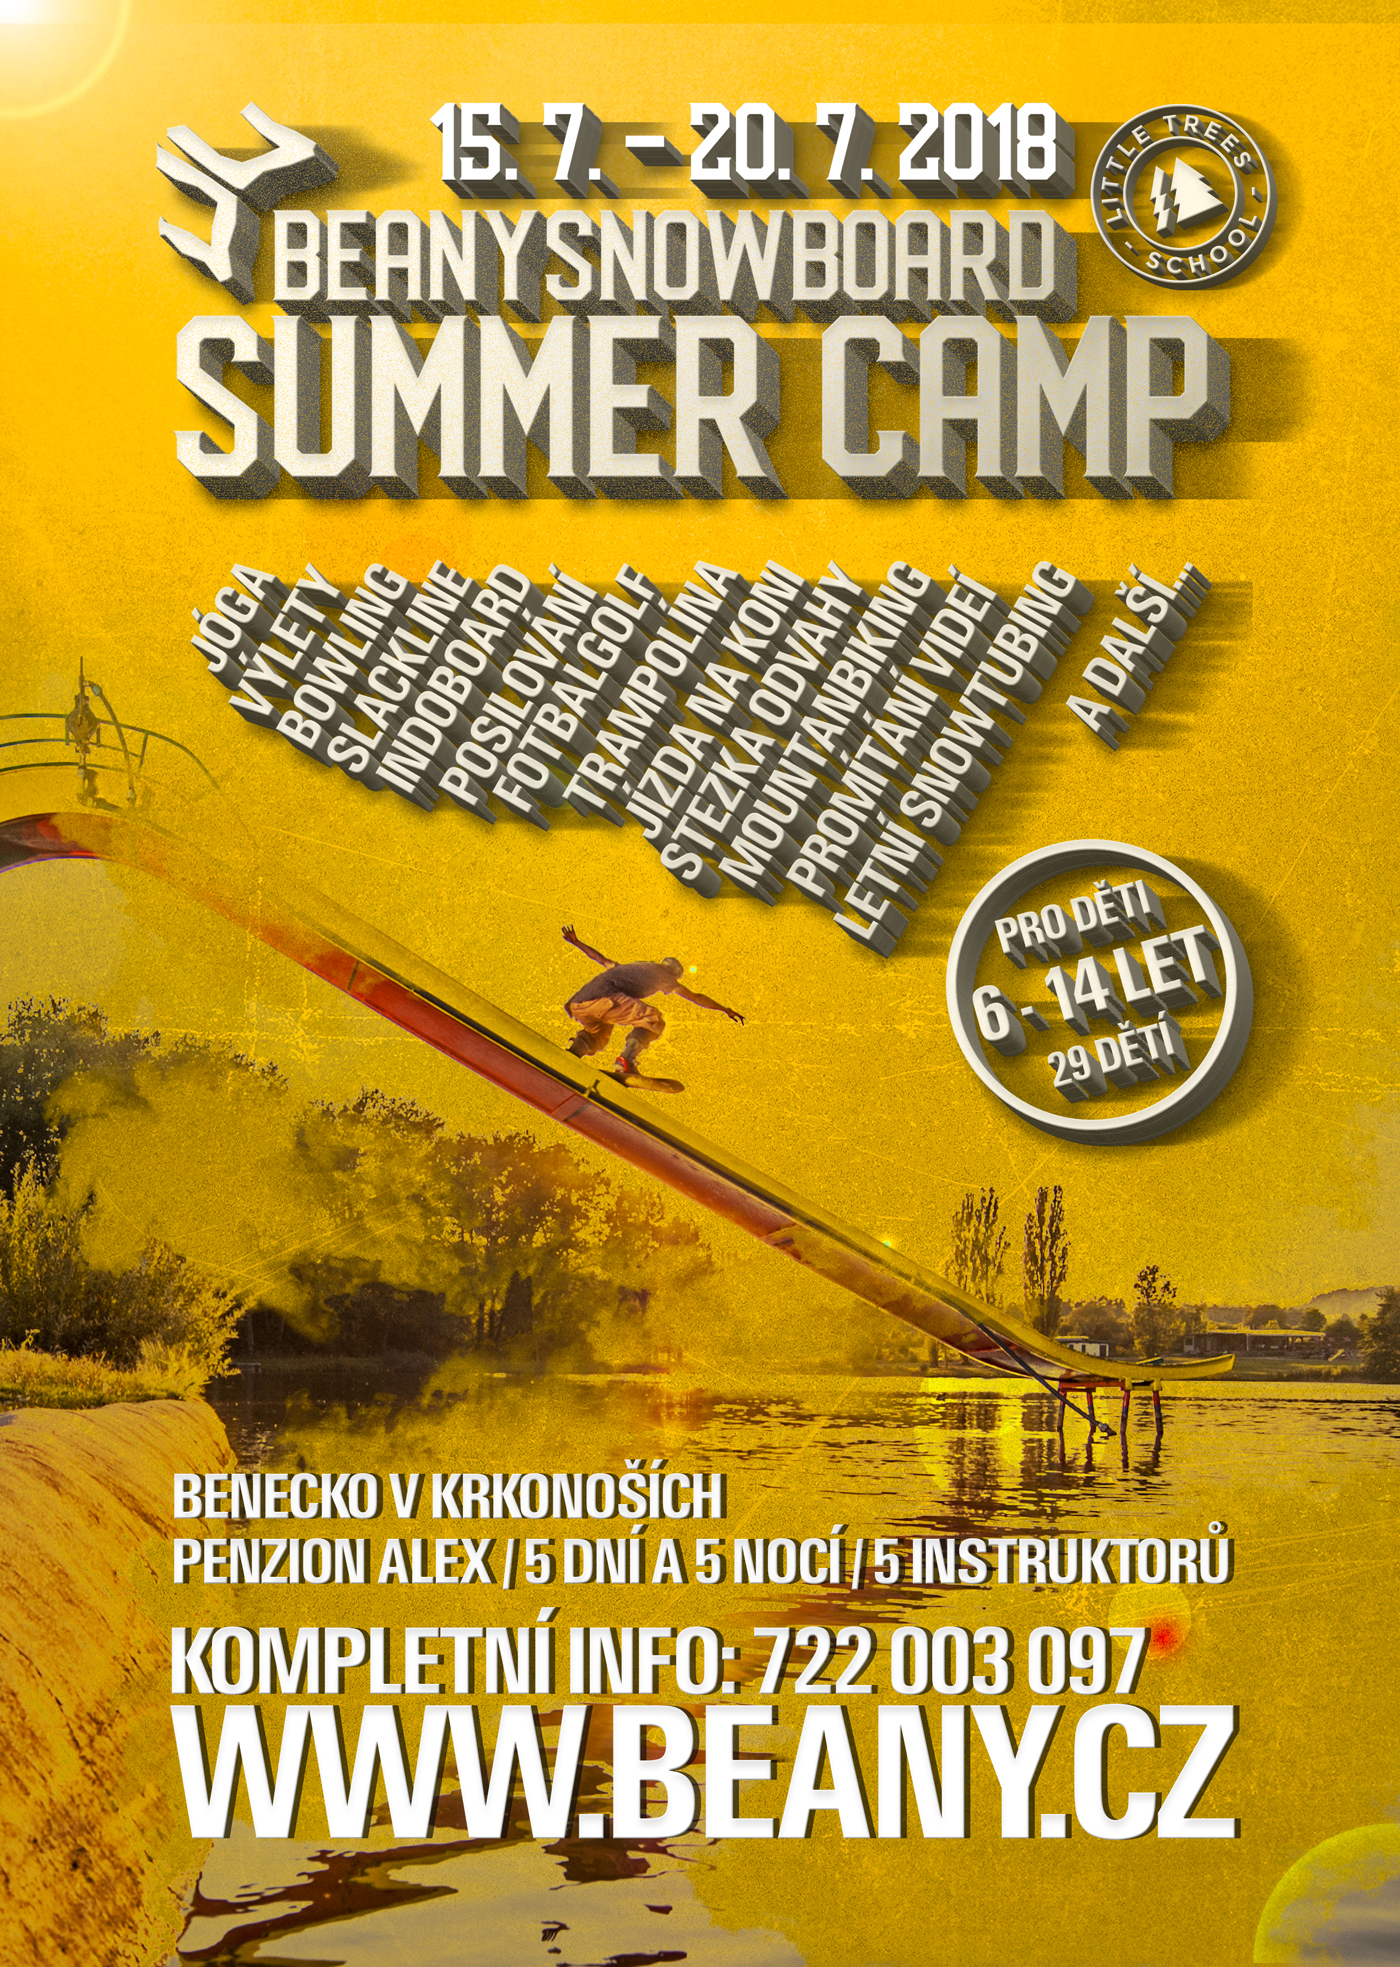 A4_plakat_Summercamp_beany_2018_maly